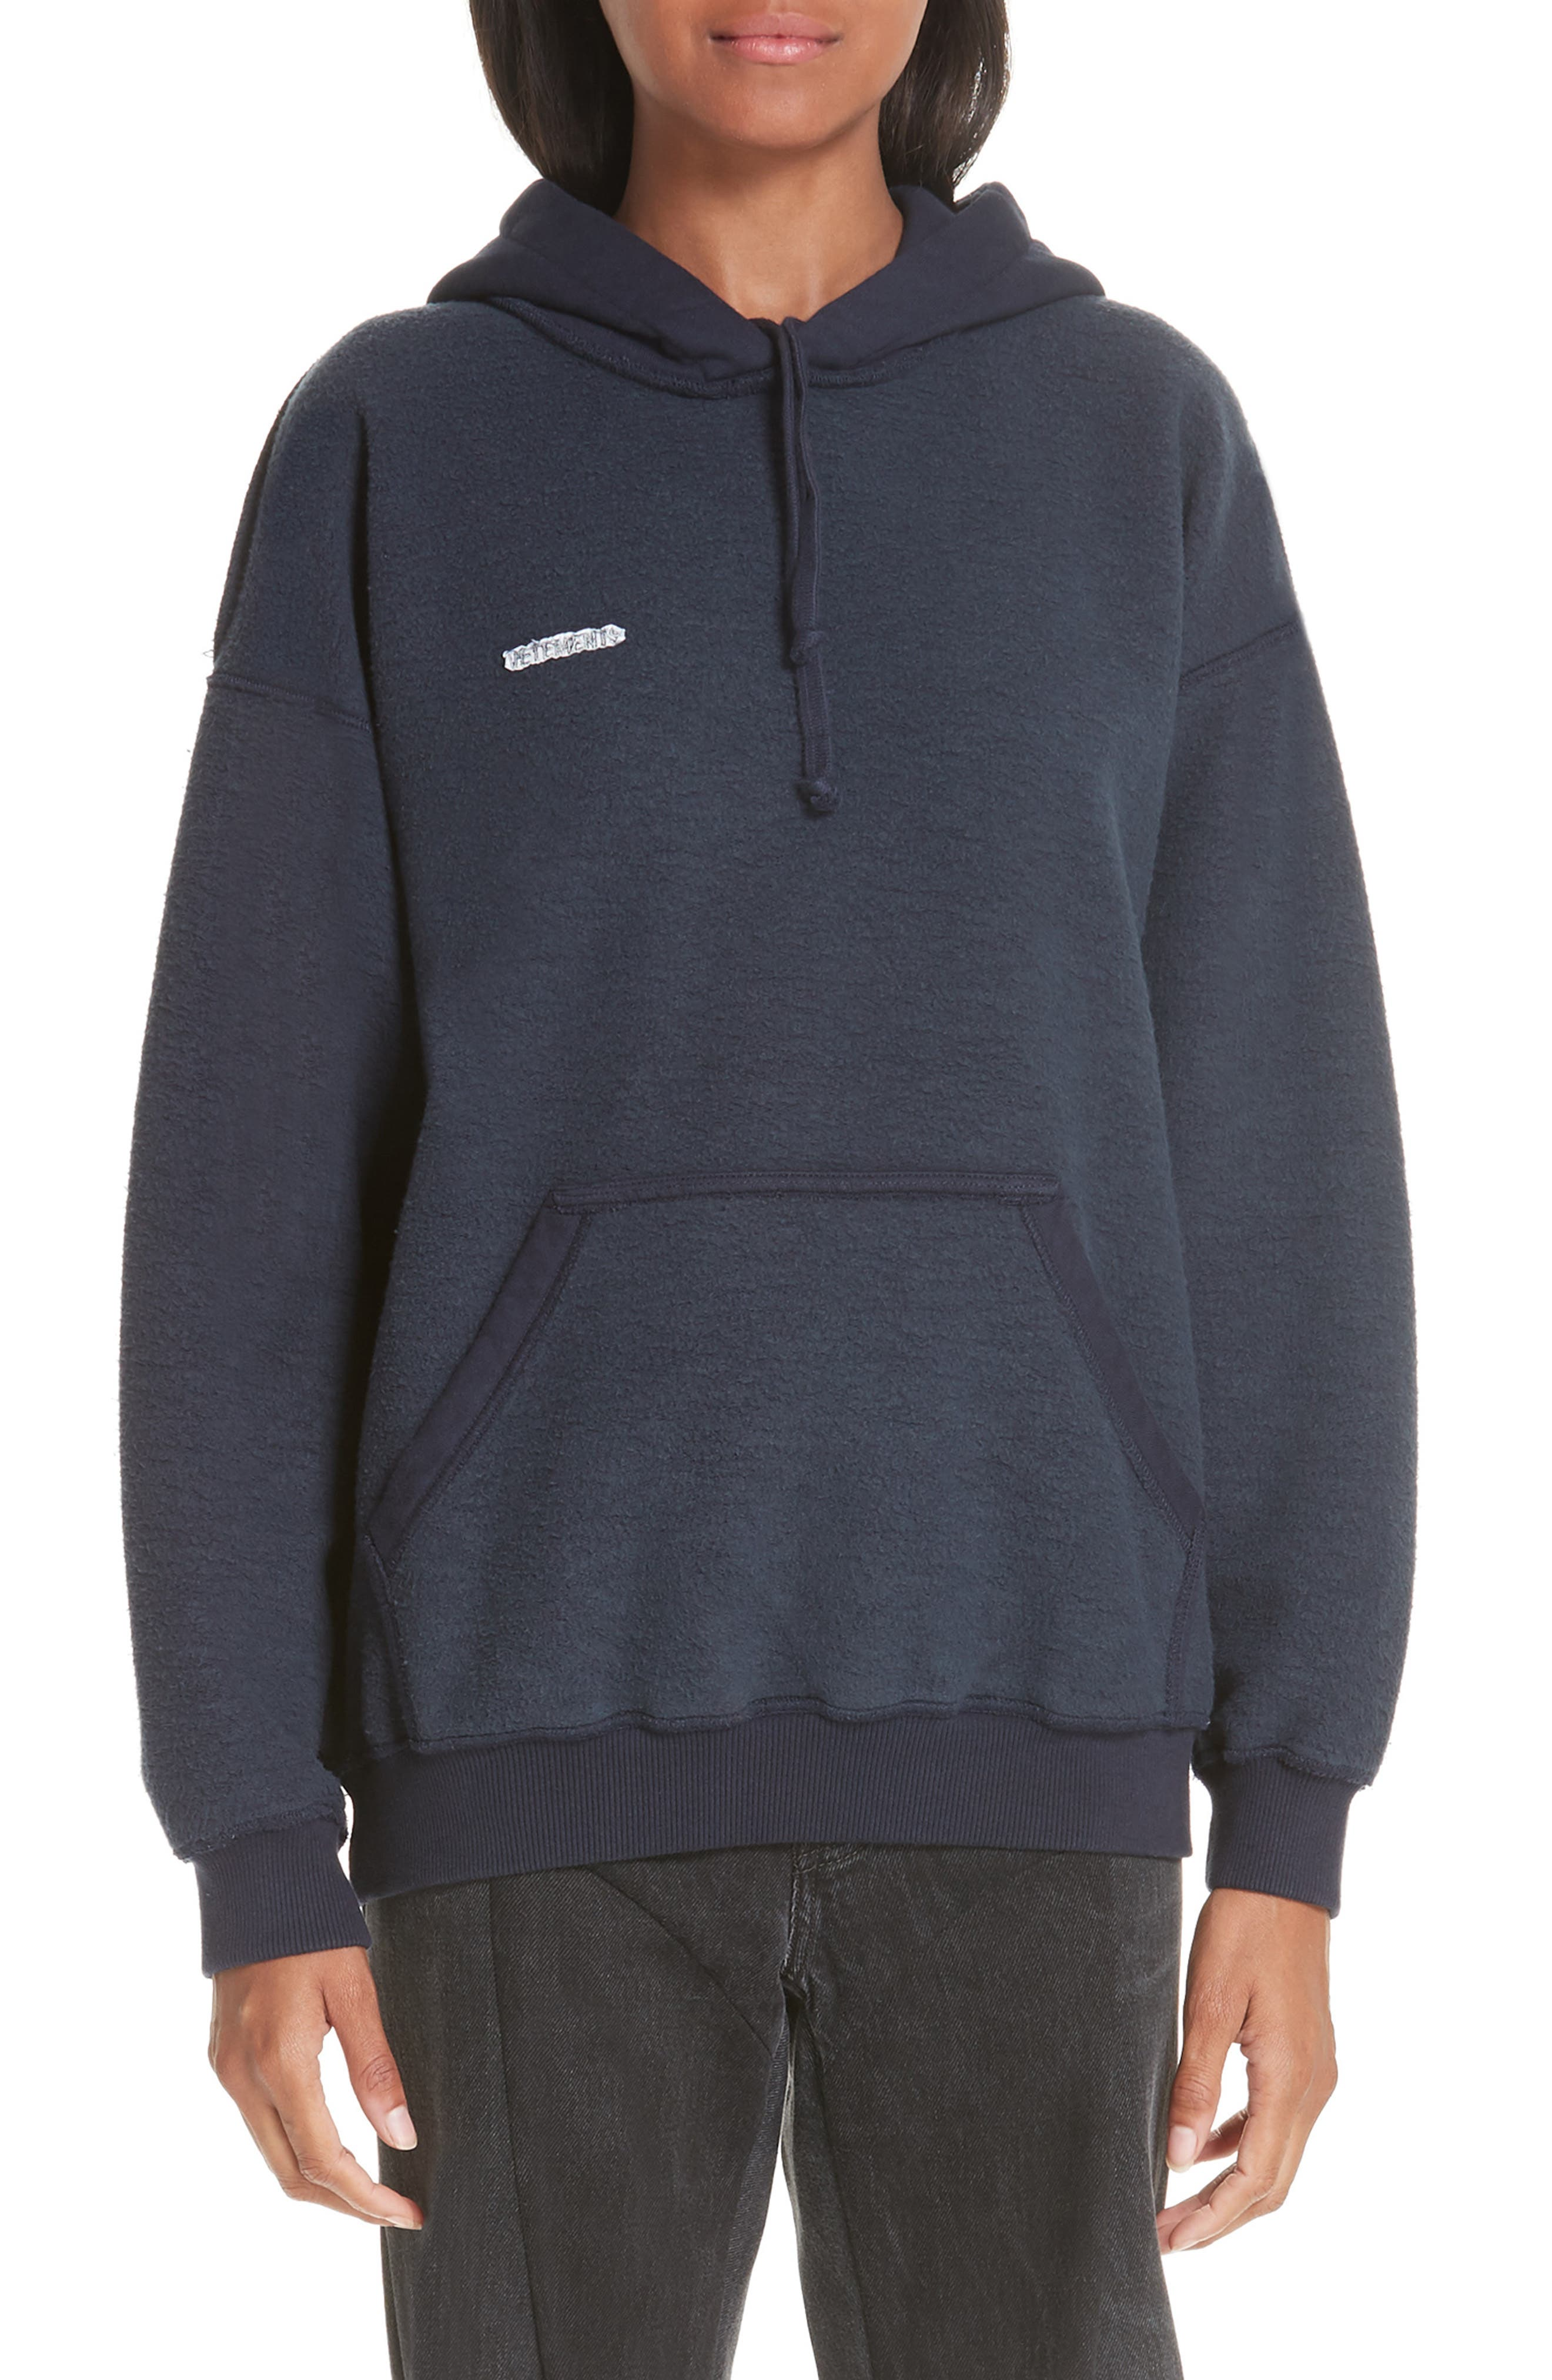 Inside-Out Hoodie,                         Main,                         color, NAVY